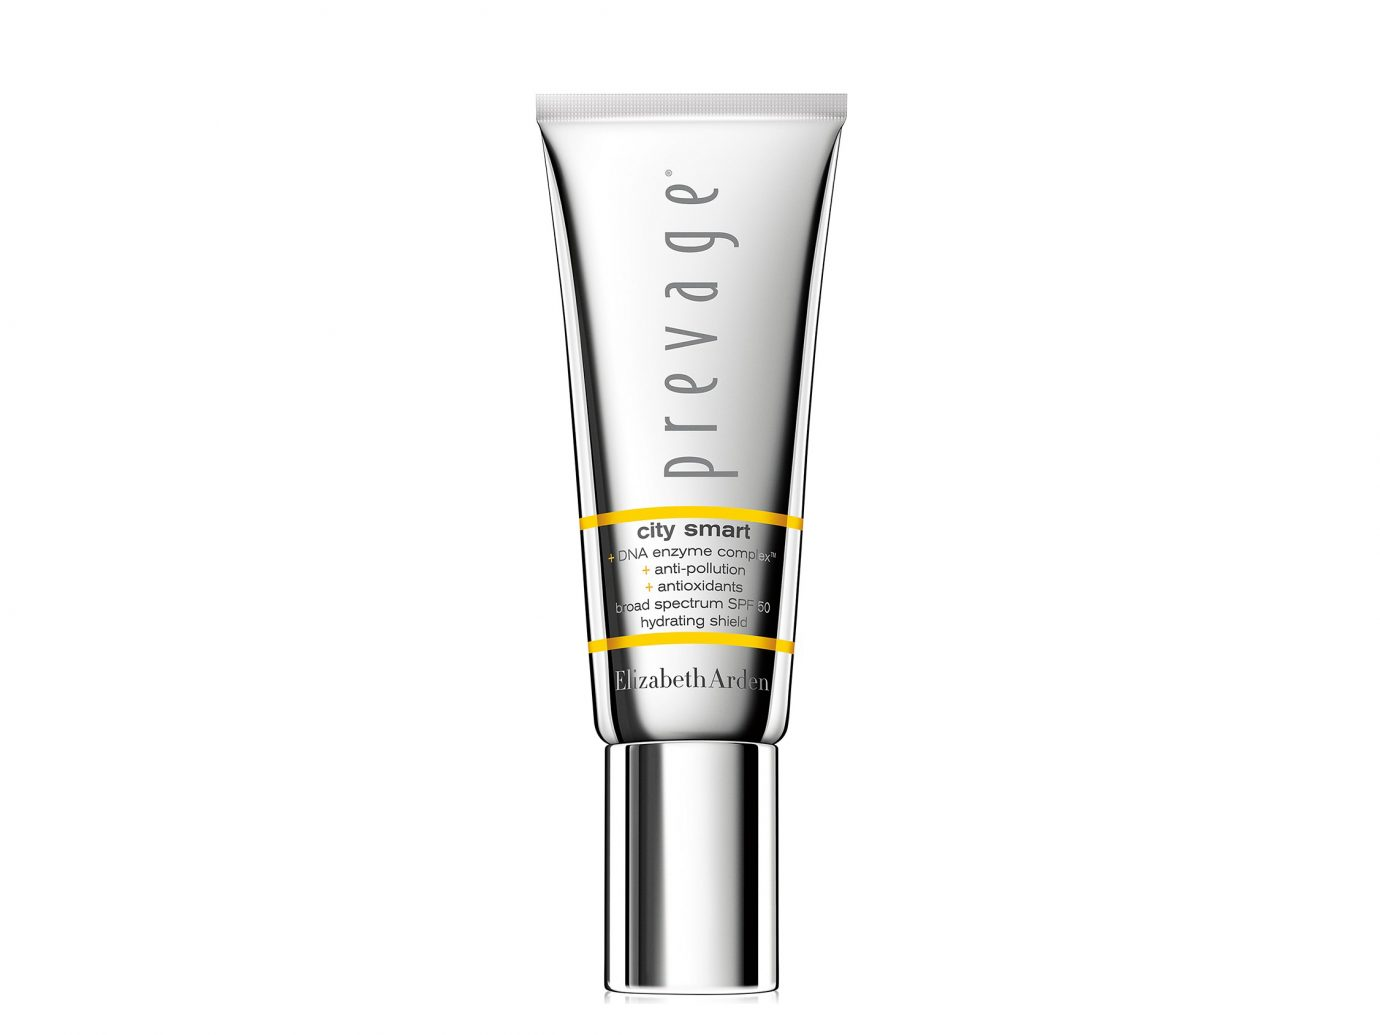 Elizabeth Arden Prevage City Smart Broad Spectrum SPF 50 Hydrating Shield, 1.3 oz